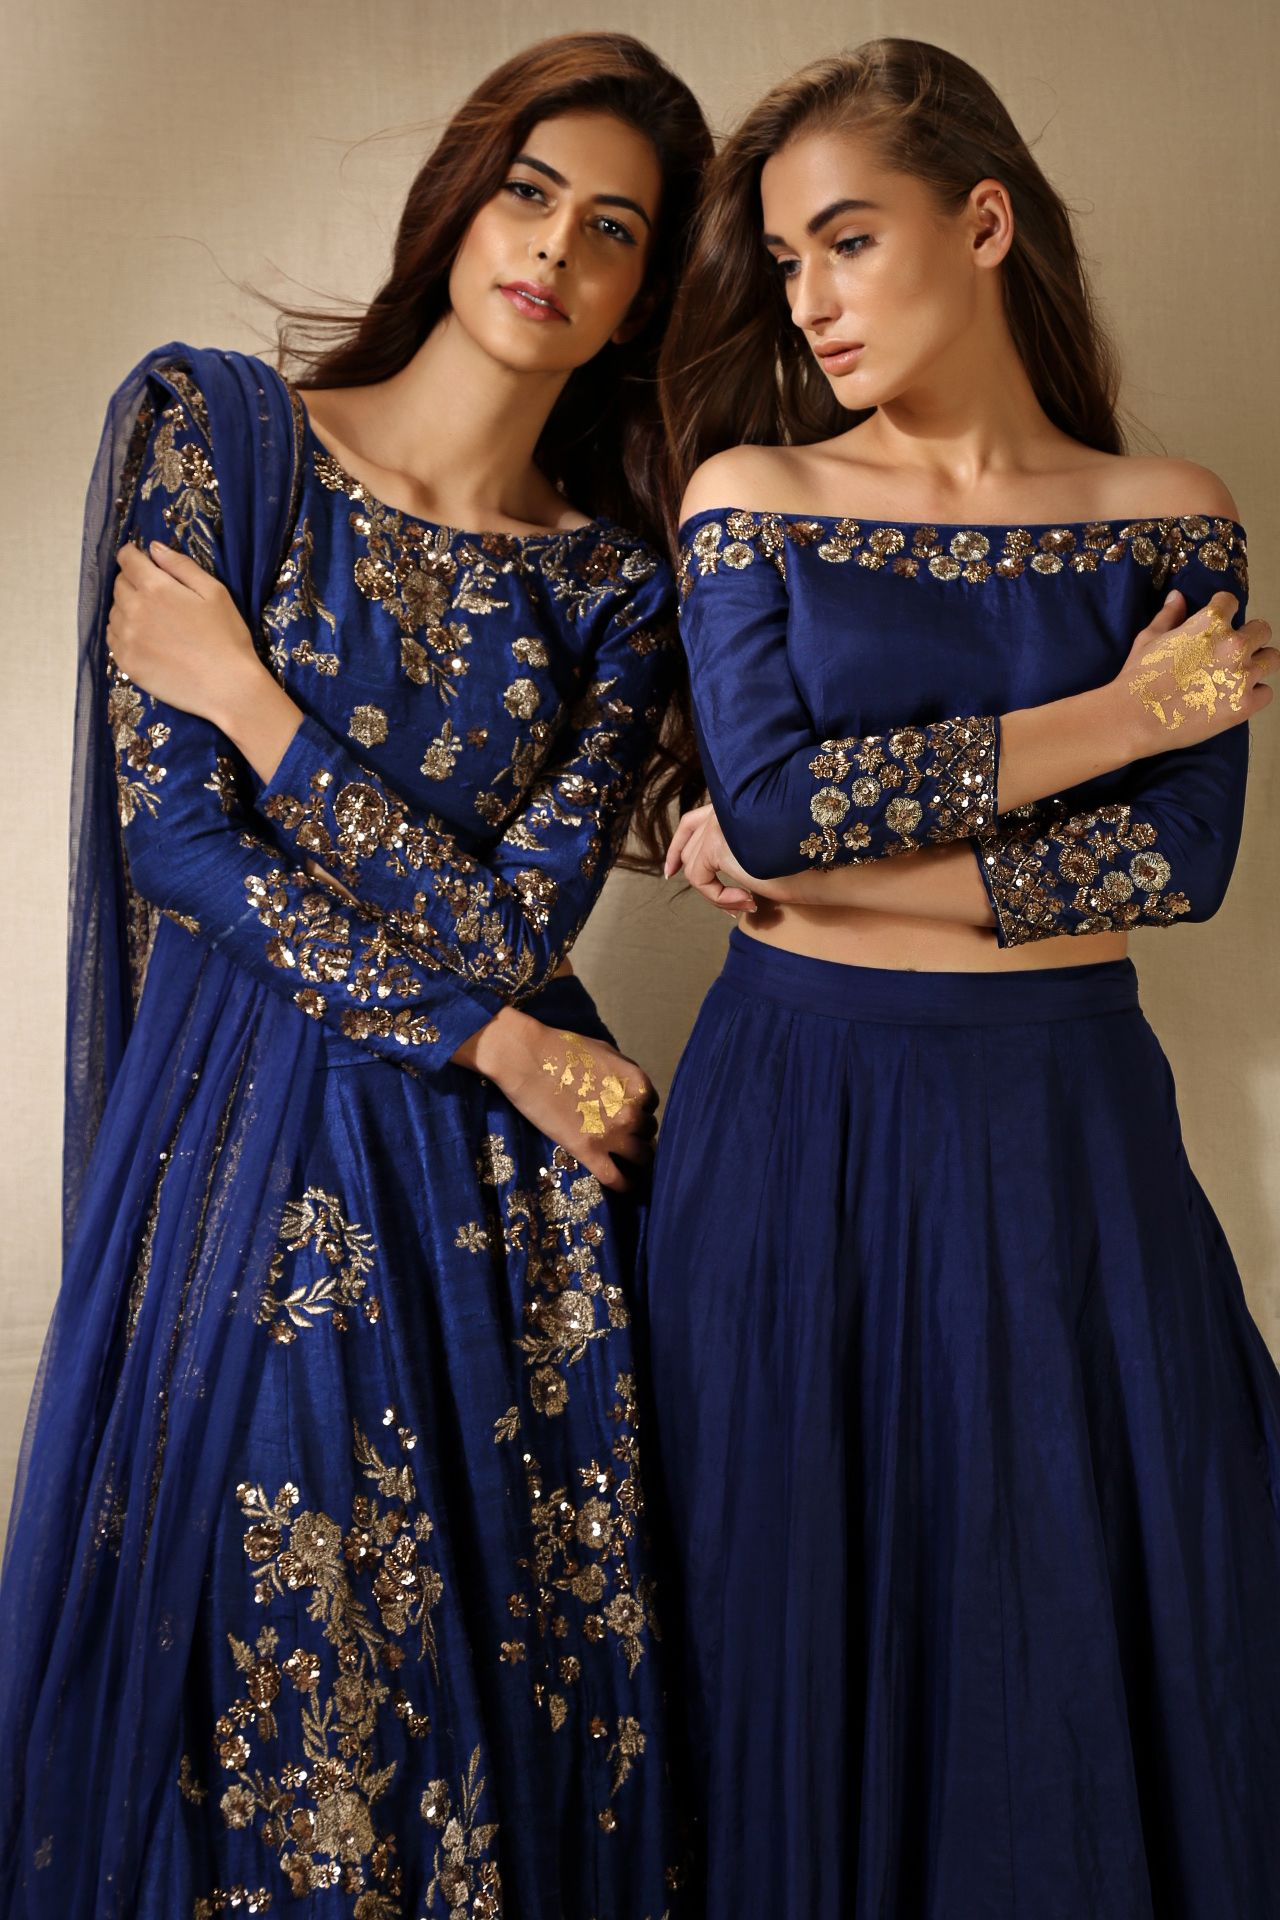 Off the shoulder blouse for an indian wedding outfit could ...